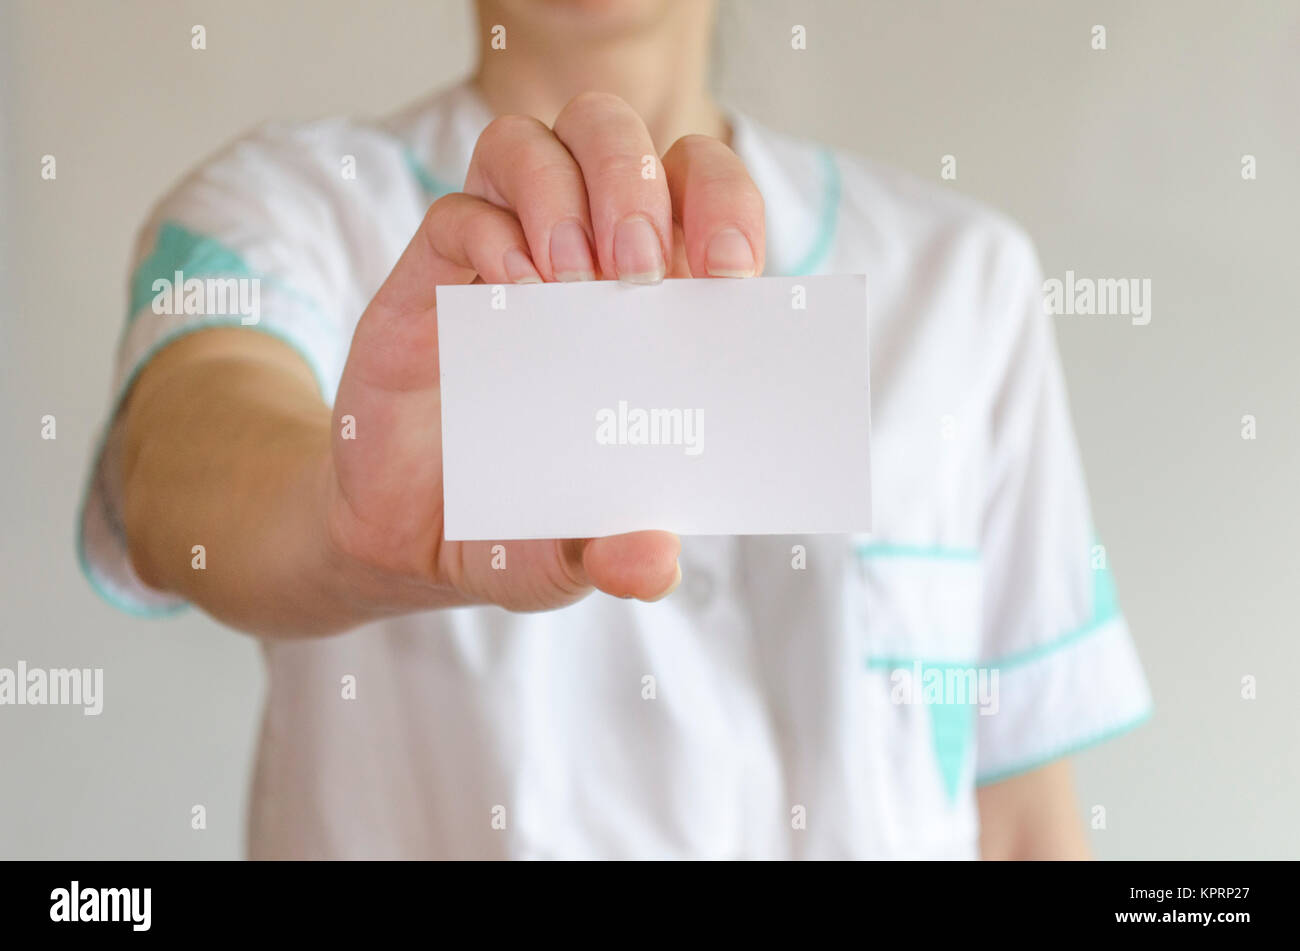 Doctor\'s hand holding blank business card Stock Photo: 168937951 - Alamy